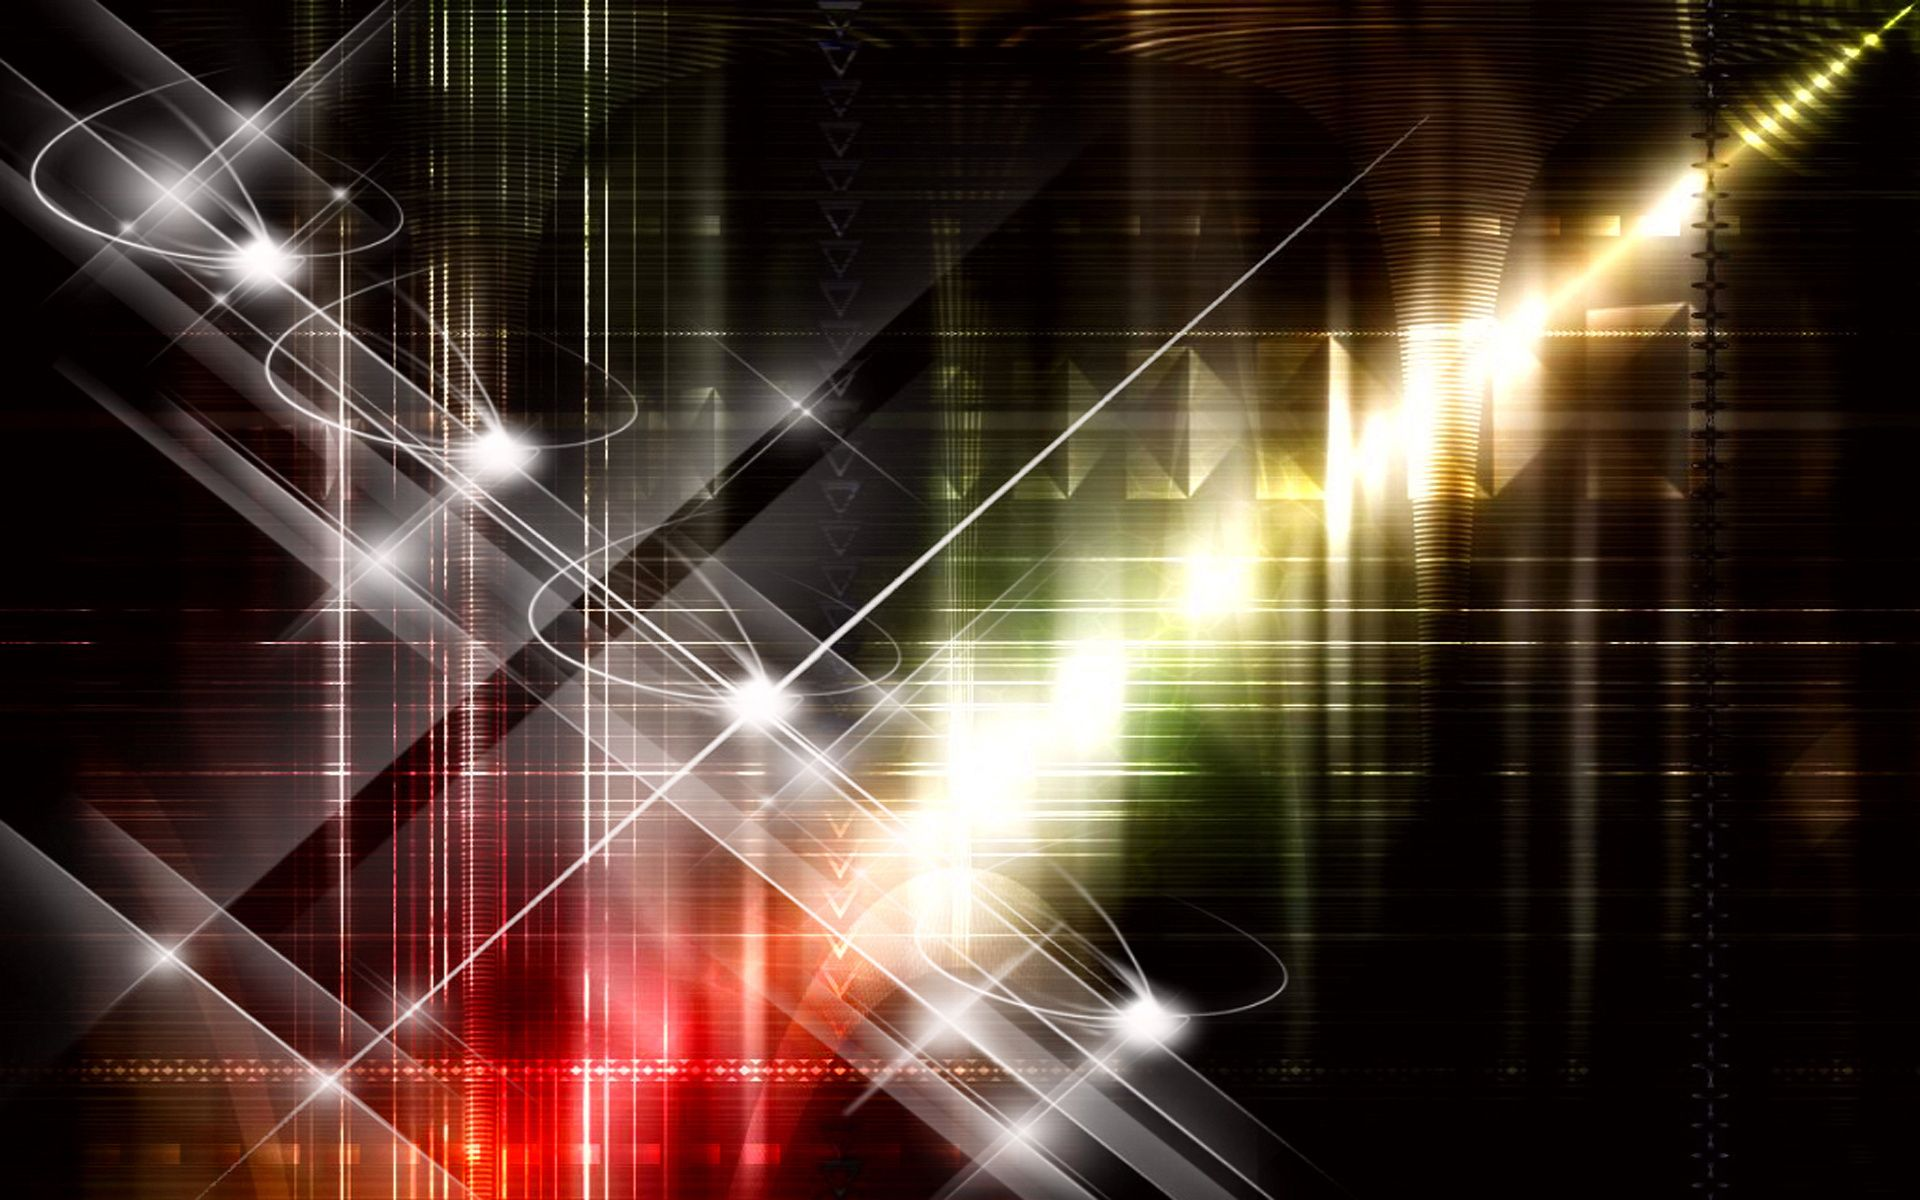 Cool Light Backgrounds